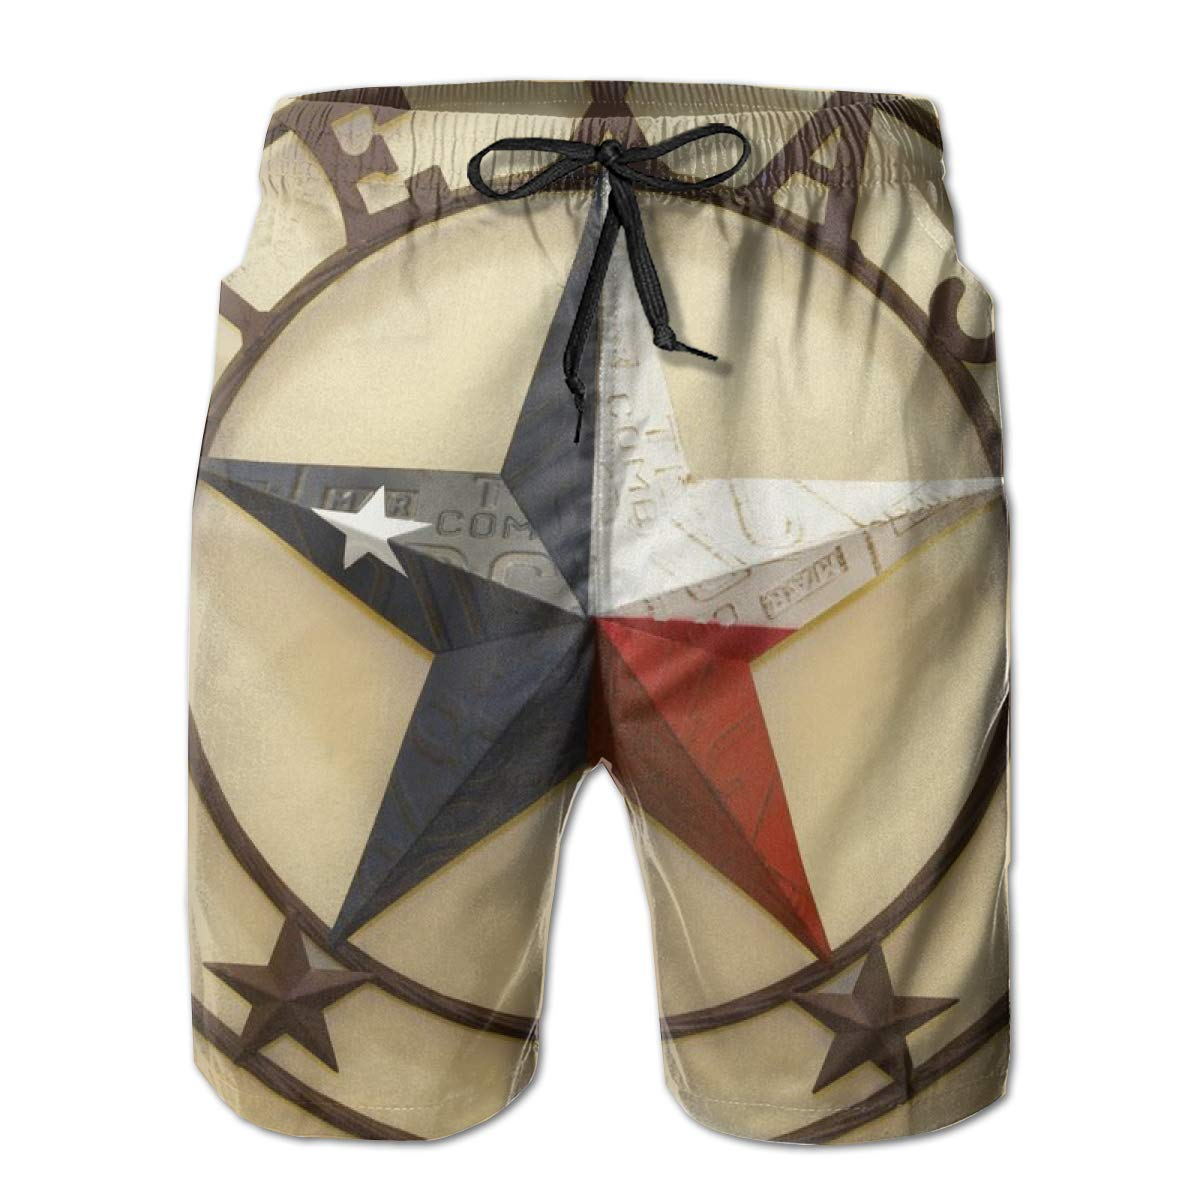 Western Texas Stars Mens Swim Trunks Quick Dry Bathing Suits Beach Holiday Party Swim Shorts